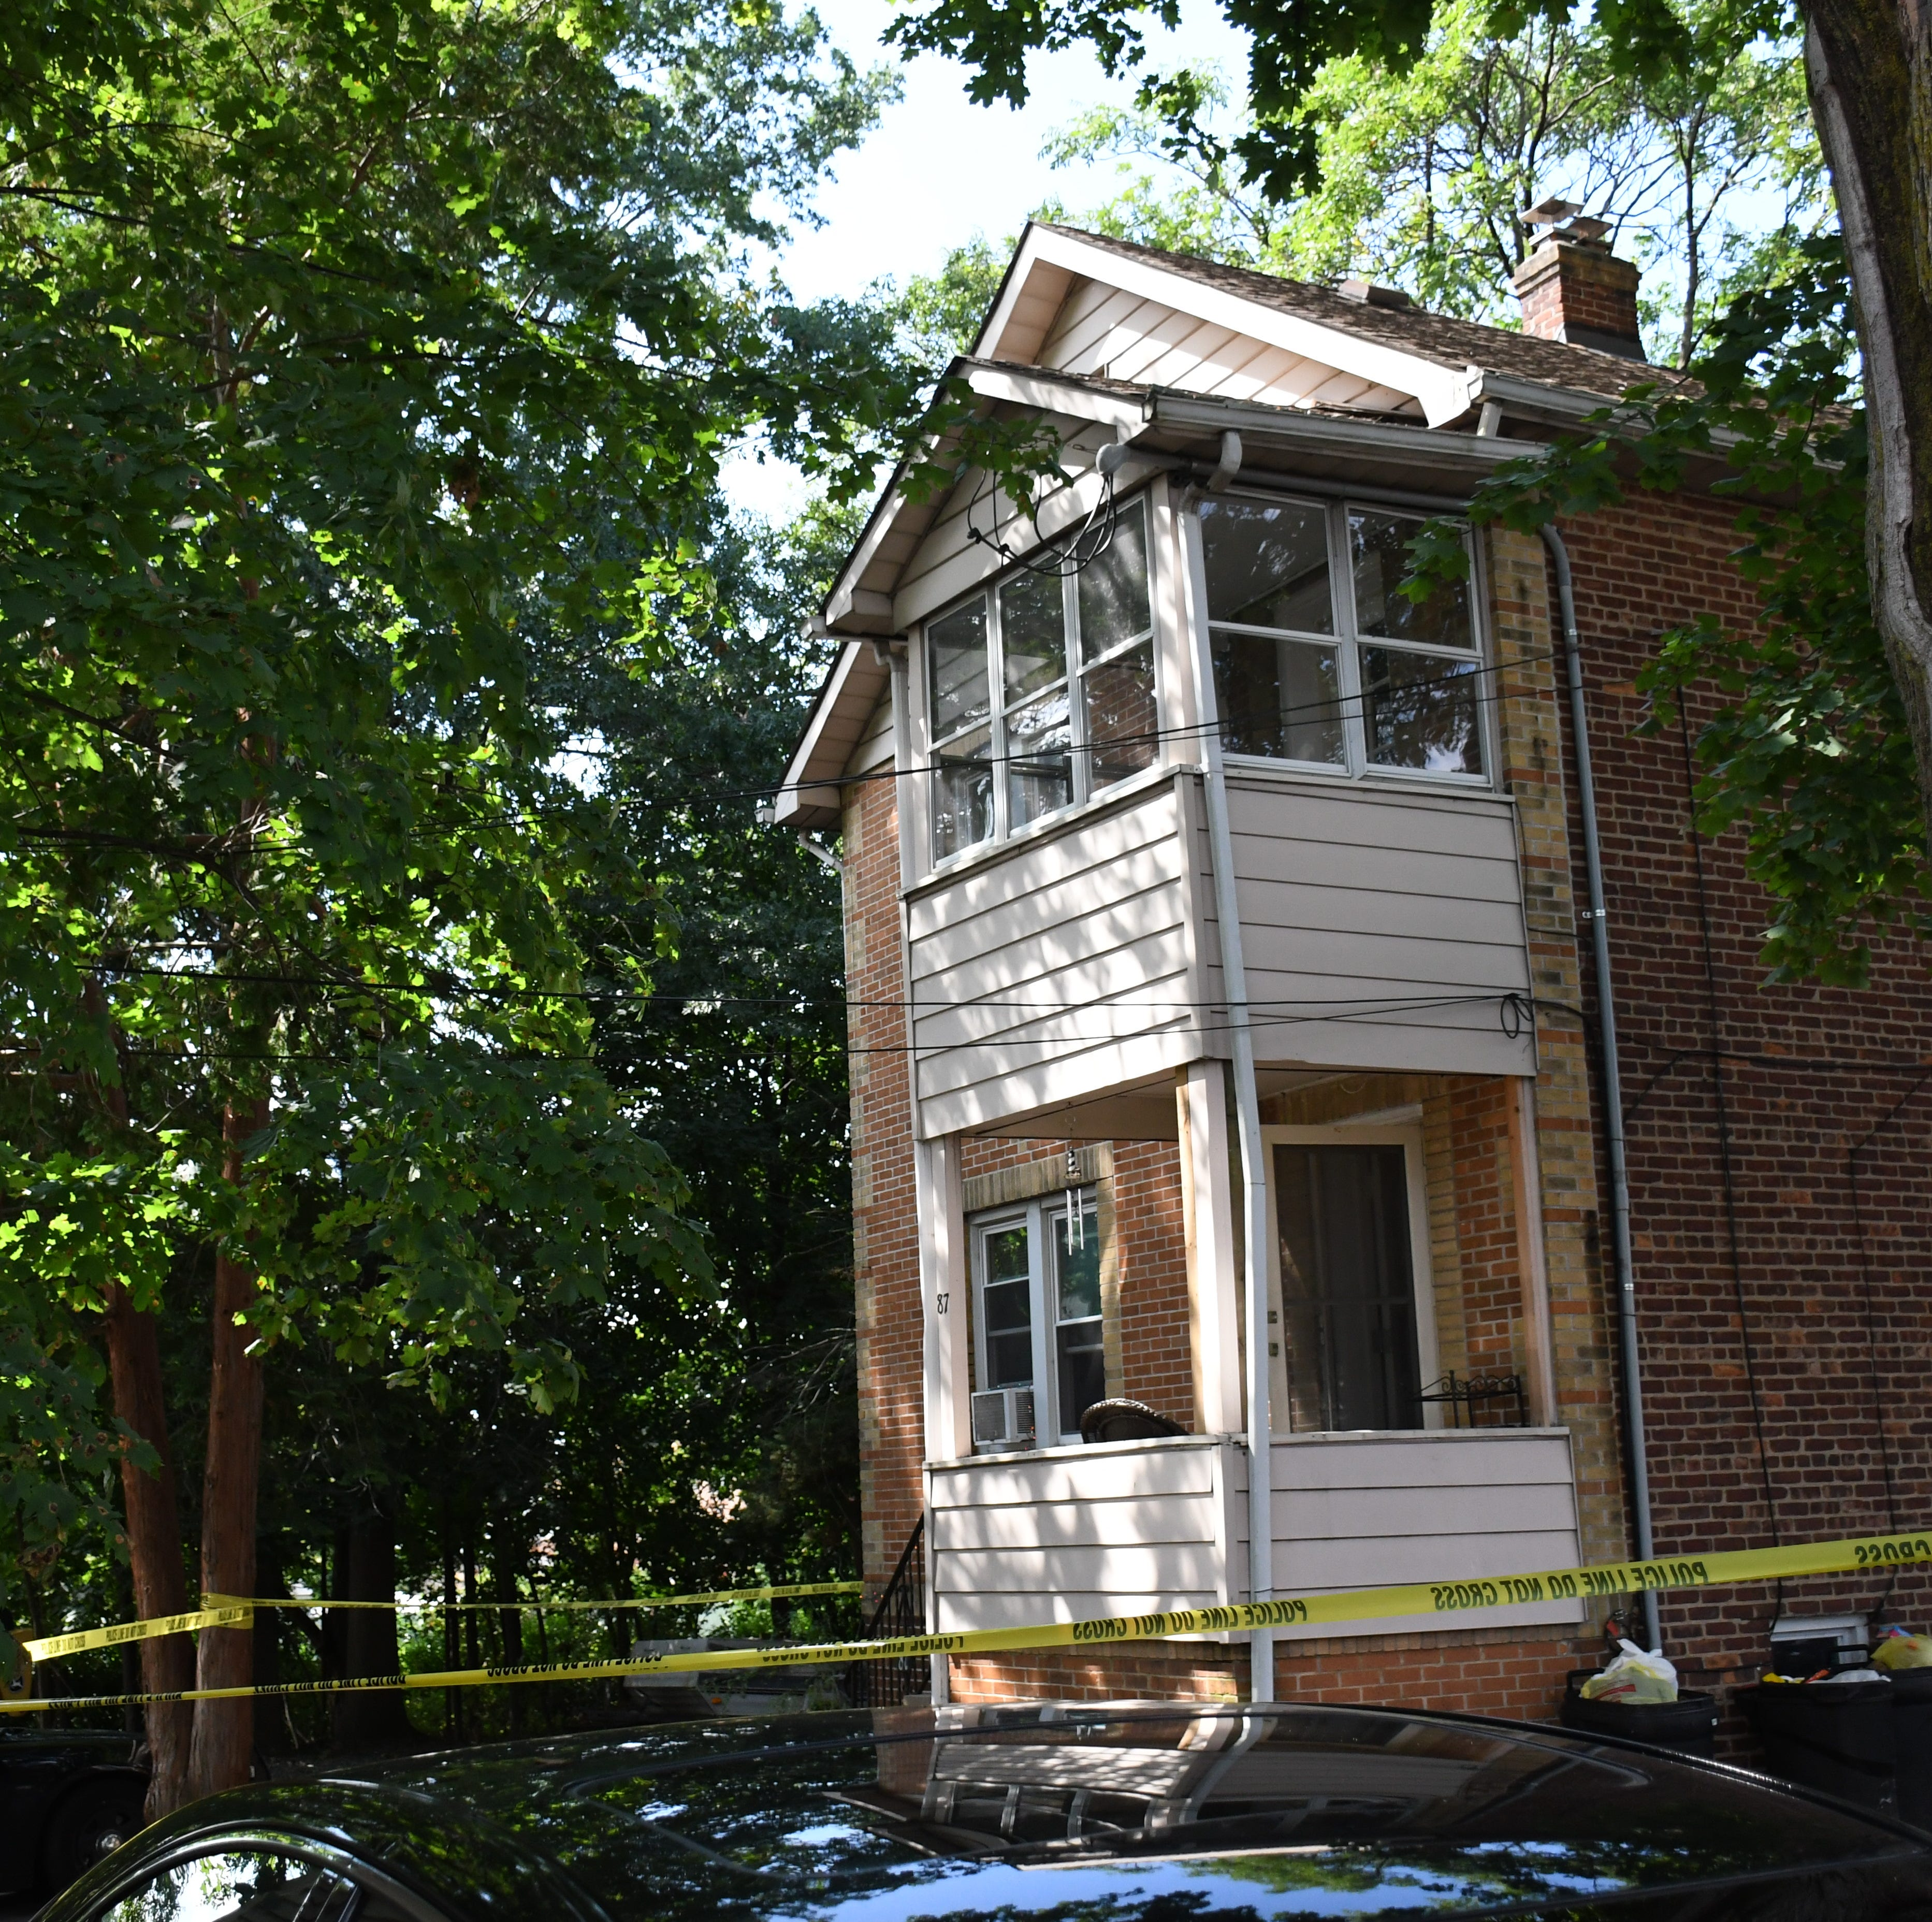 Four attempt to break into Nutley home, lead police on chase